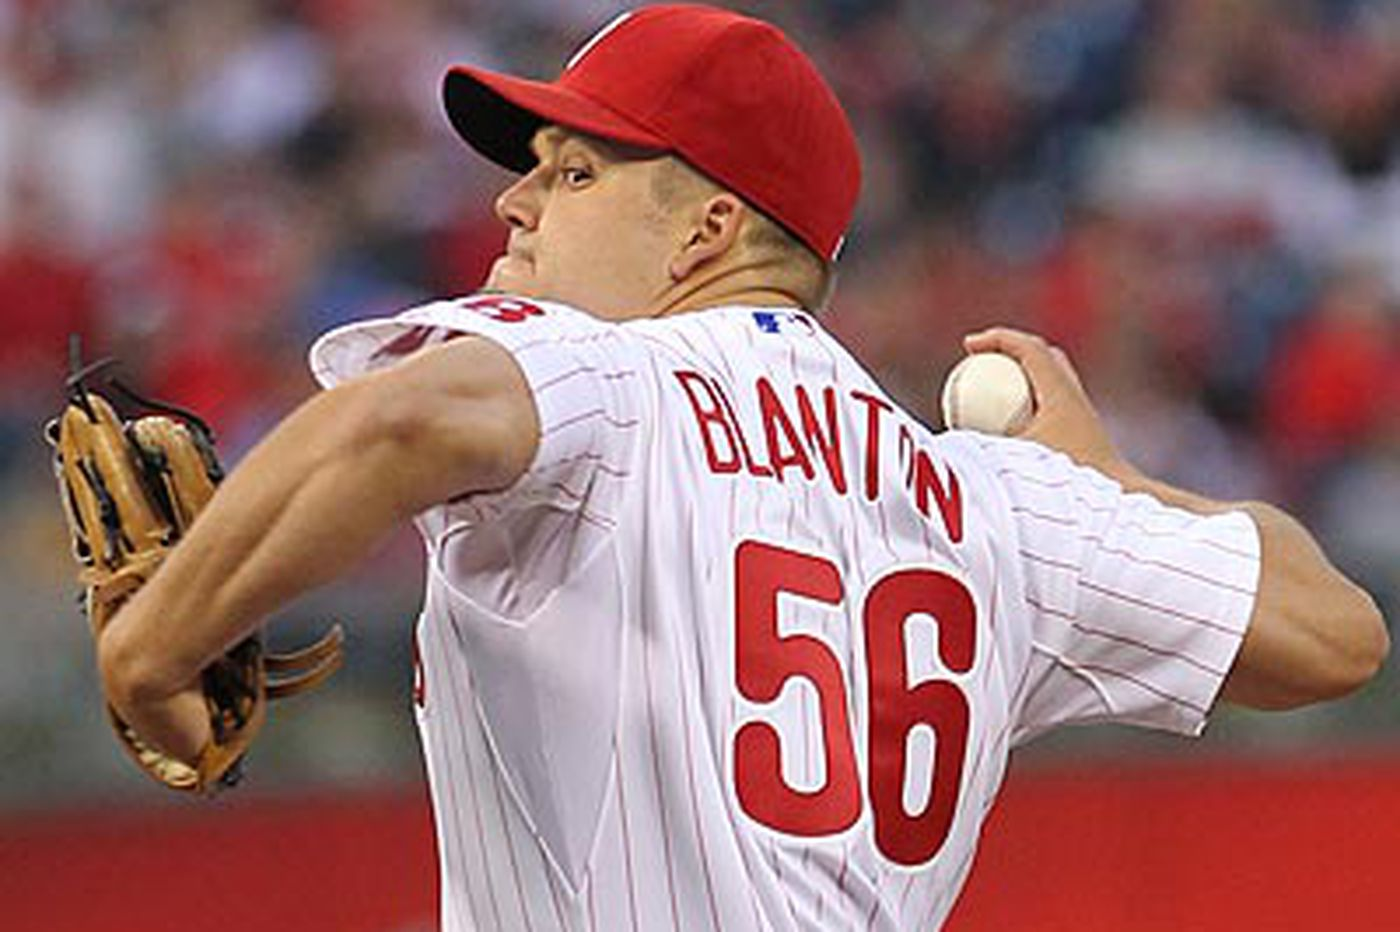 Phillies Notebook: Phillies managing to be concerned about Blanton